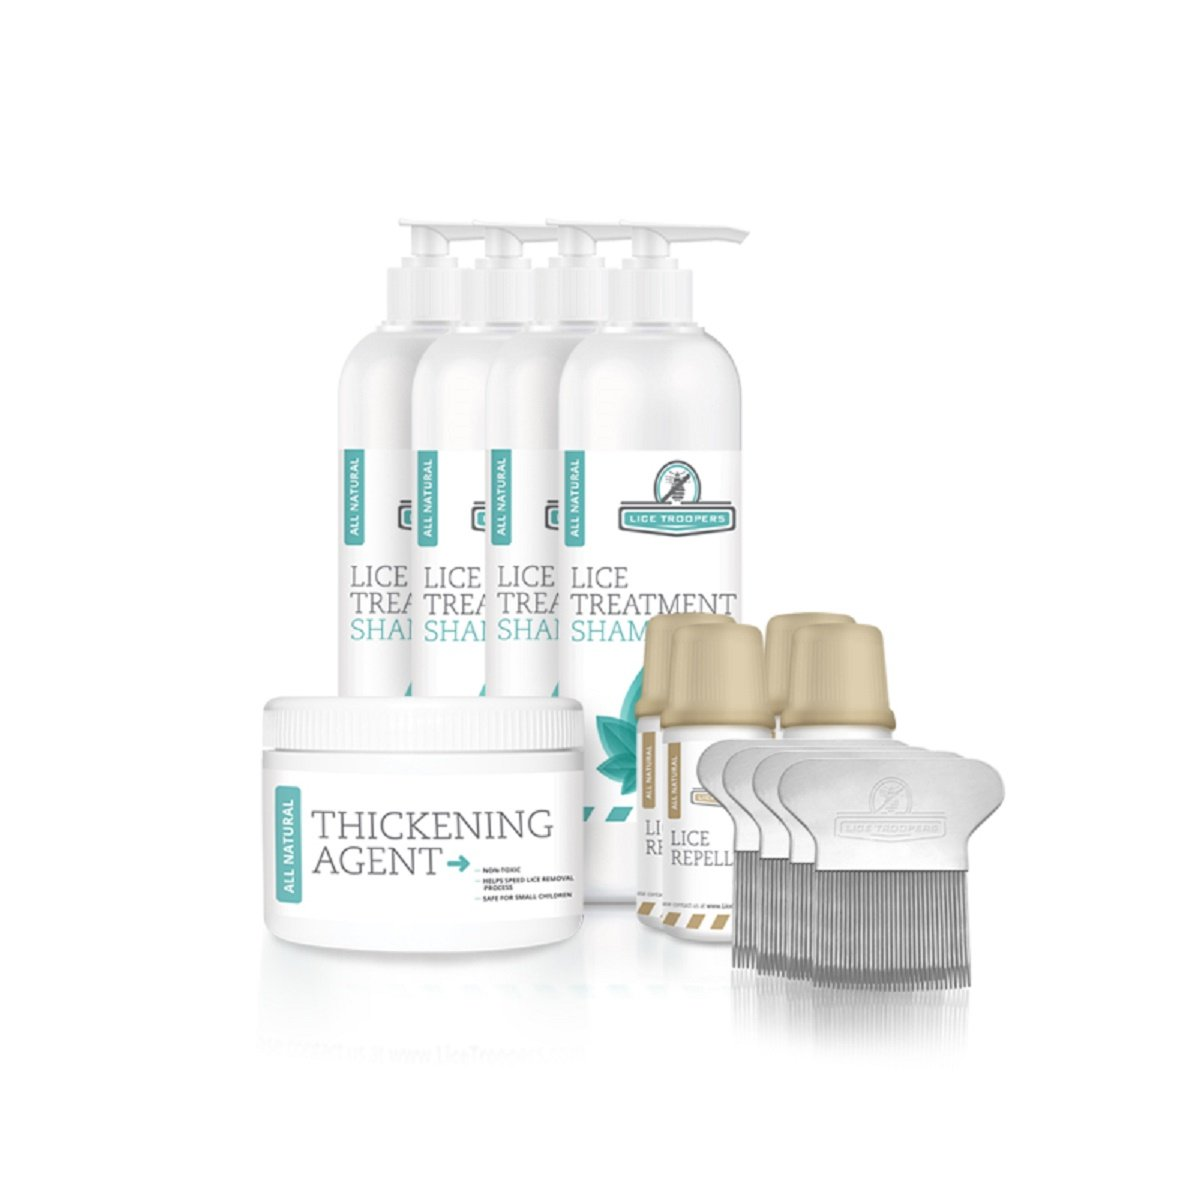 Lice Troopers Four Person Lice Treatment Kit - Includes Lice Treatment Shampoo, Repellent, Comb, Thickening Agent